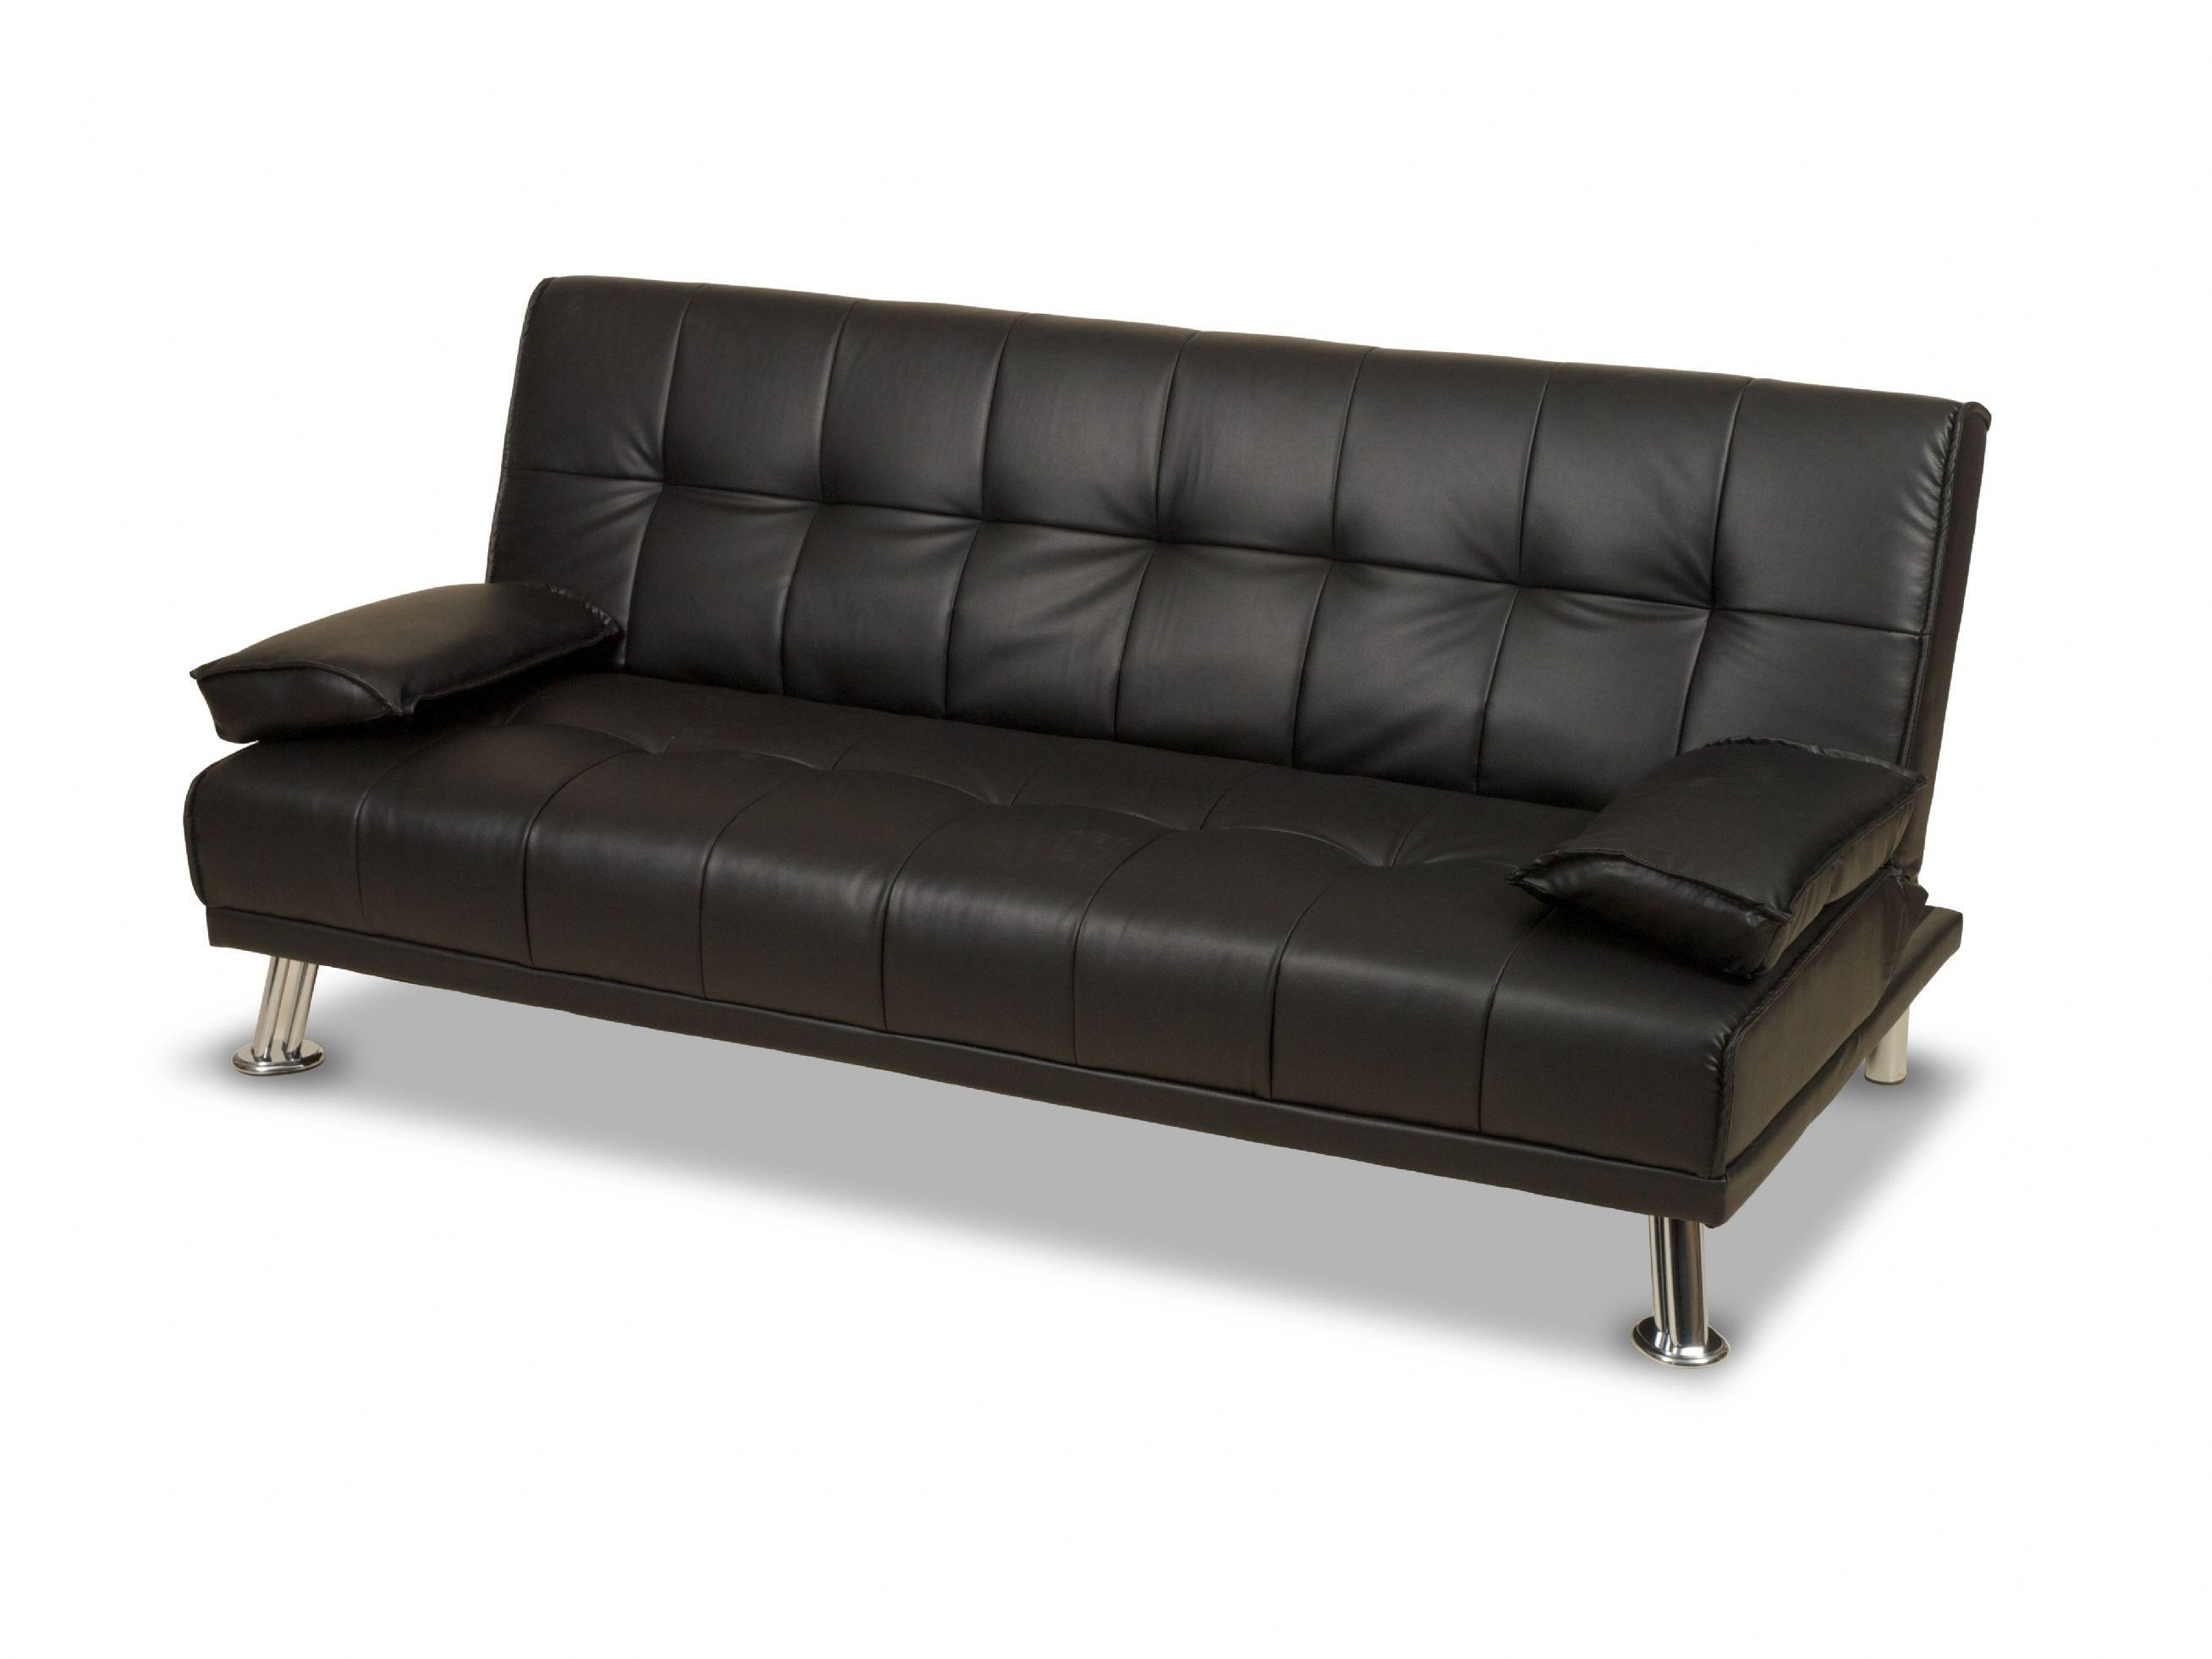 Home Tips: Costco Ottoman | Costco Couch | Storage Bench Ottoman Within Bench Style Sofas (Image 10 of 20)